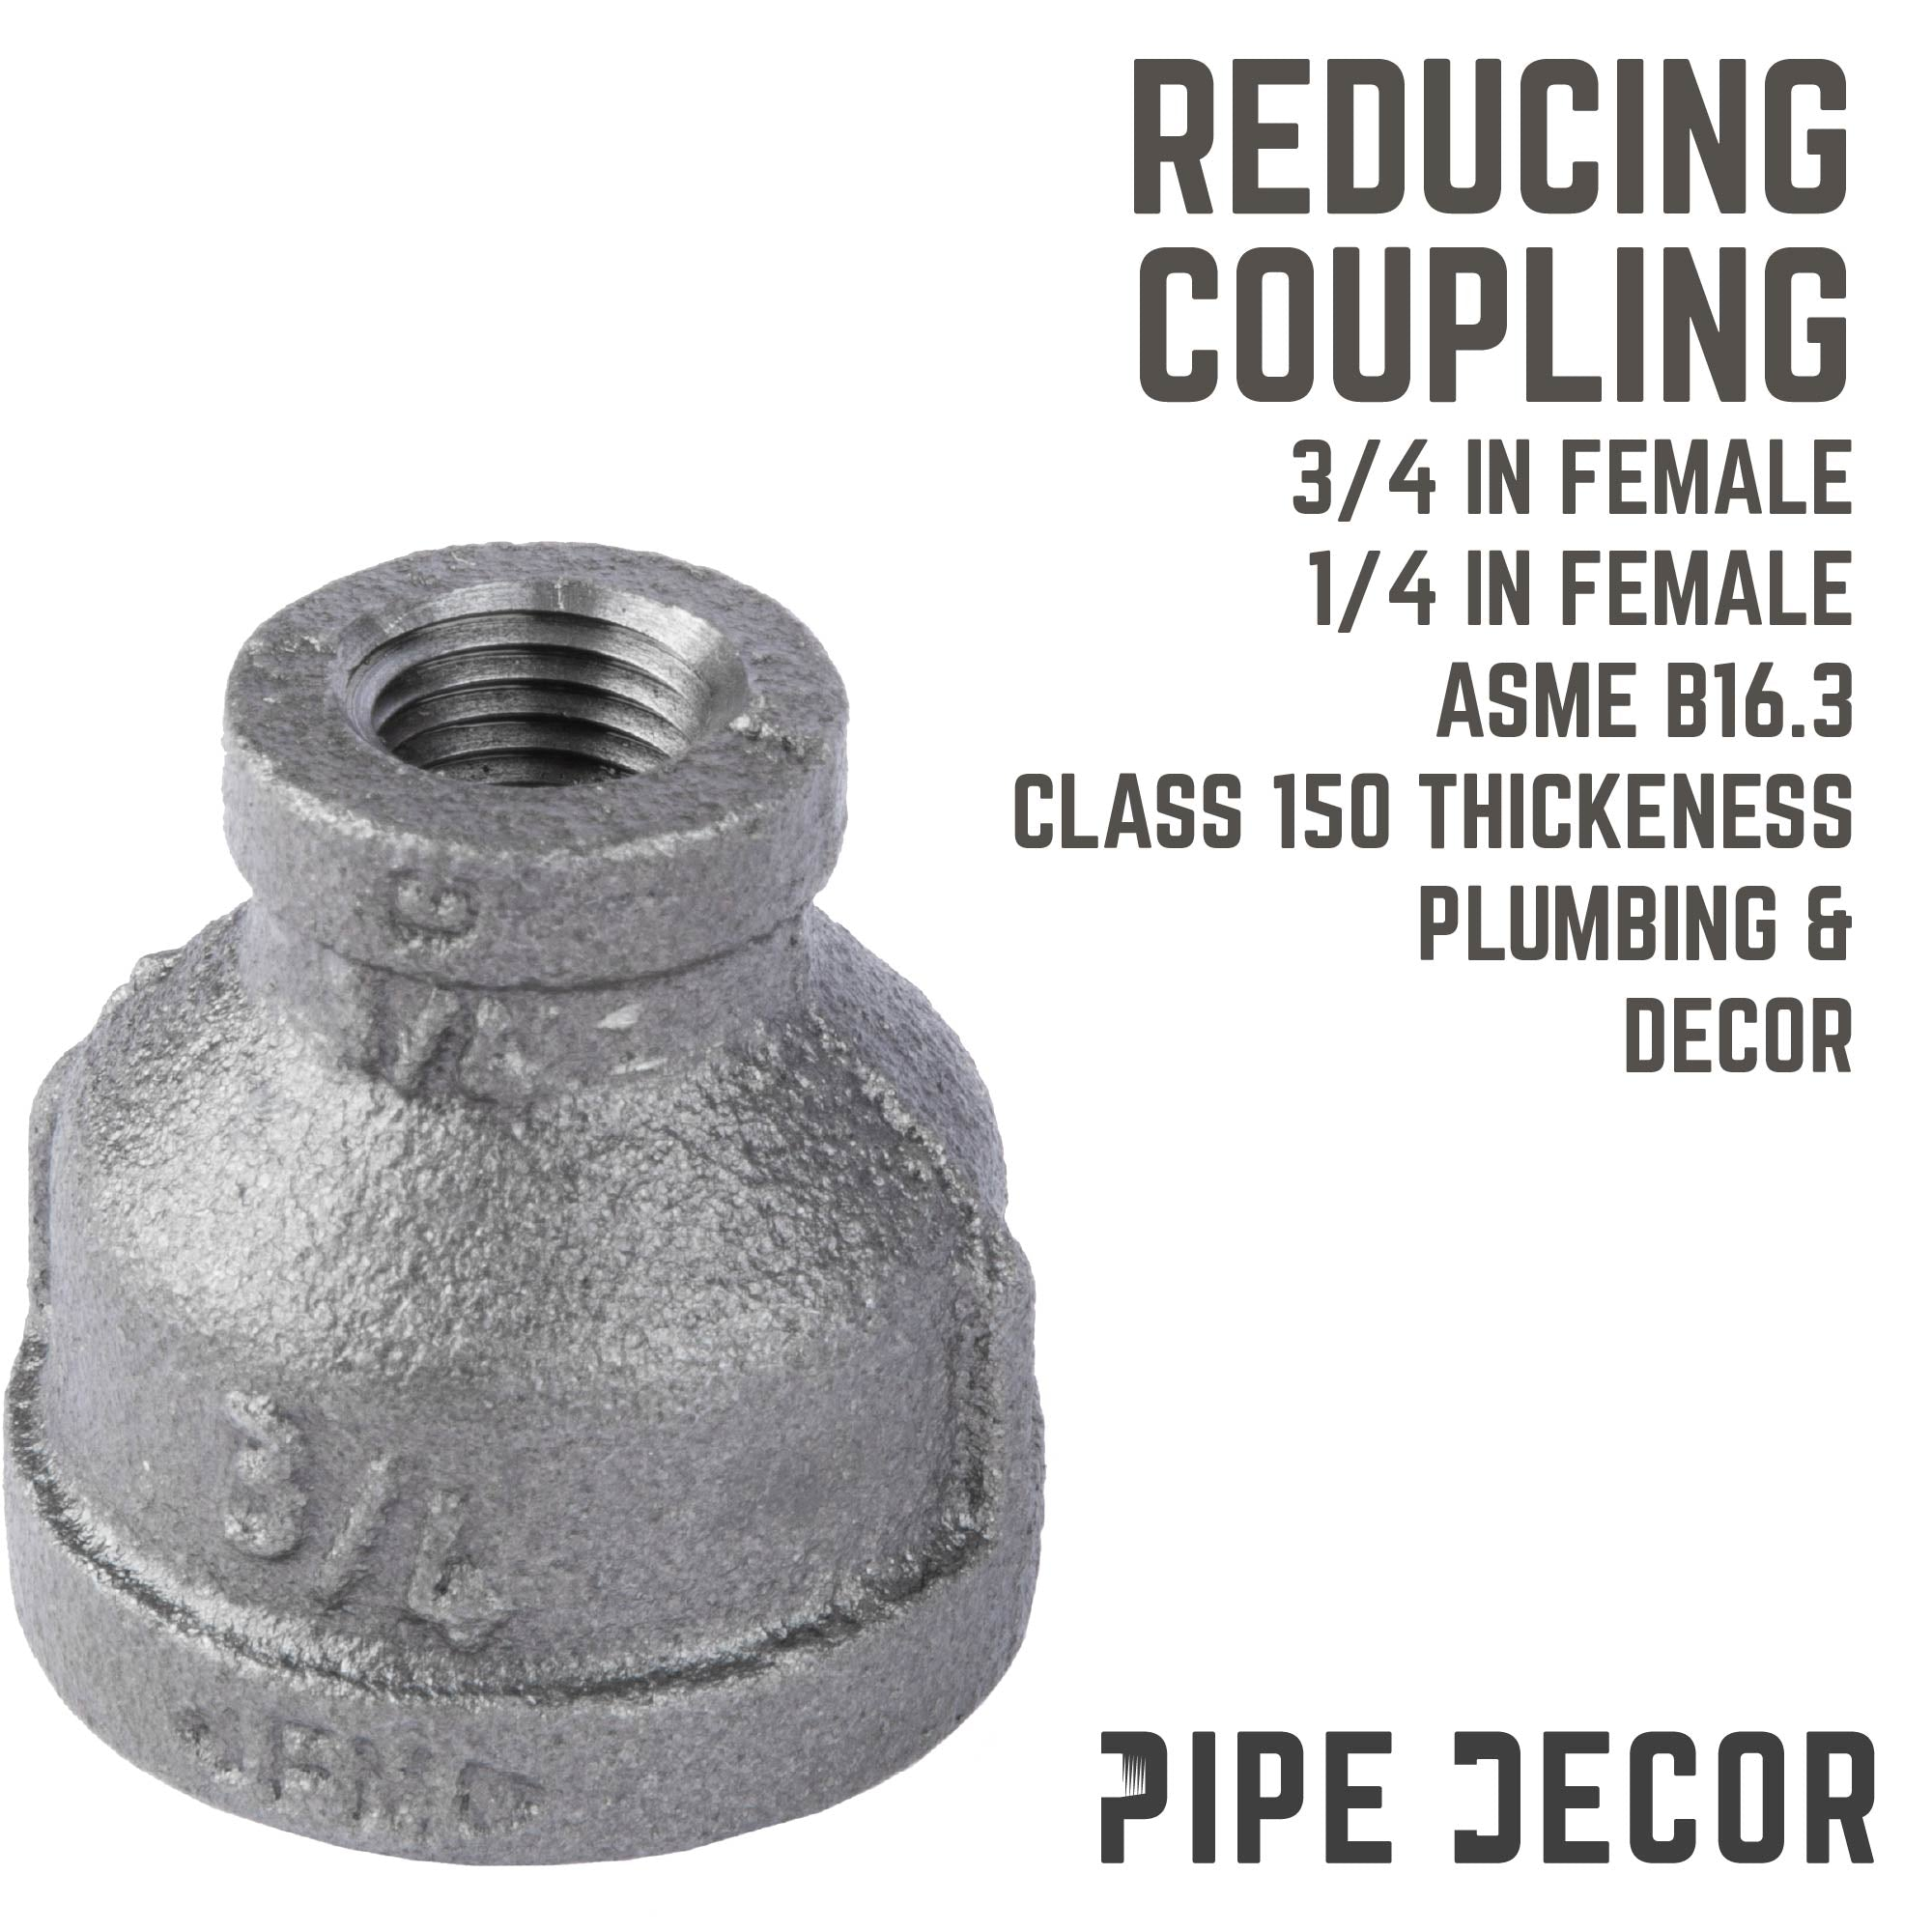 3/4 IN X 1/4 IN REDUCING COUPLING